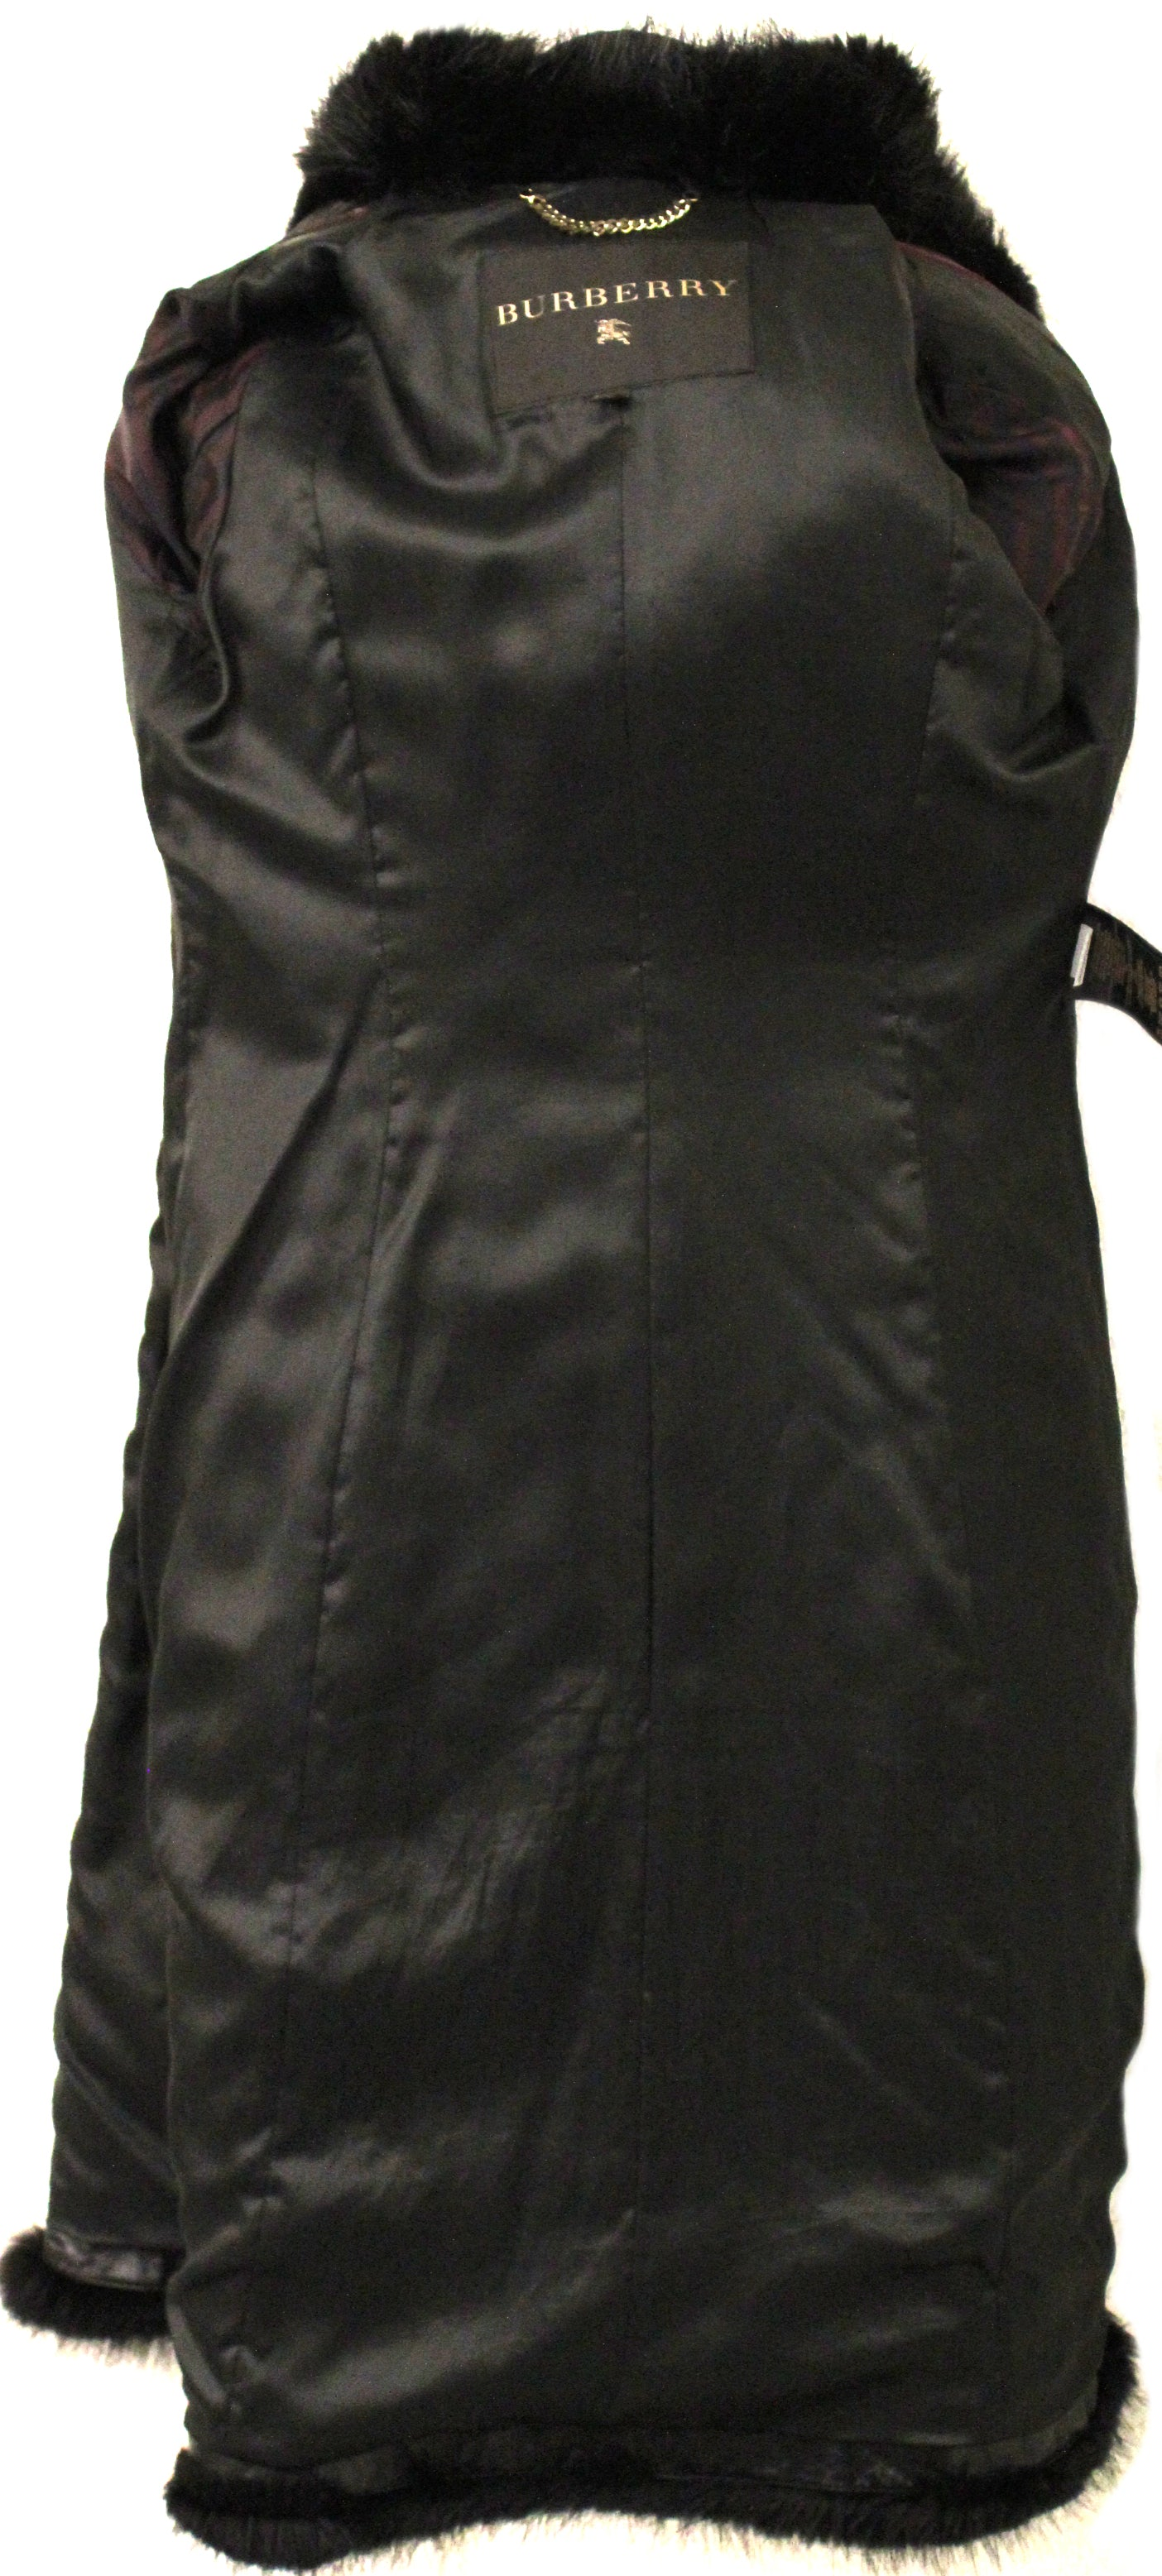 677de96f612 Burberry Black Quilted Leather Trench Coat with Fur Trim (Size 40 ...